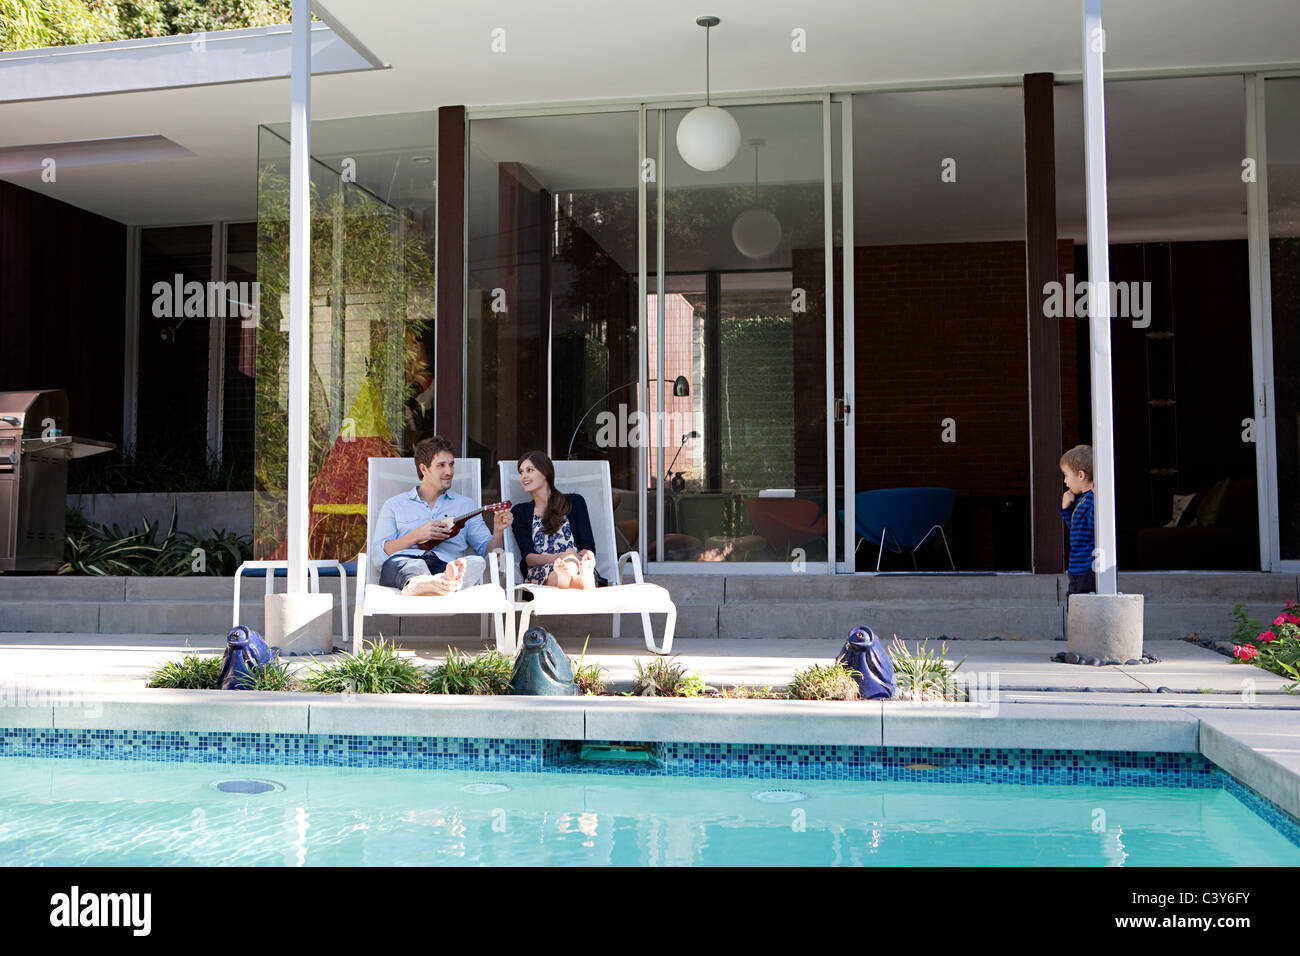 Parents with son at poolside - Stock Image